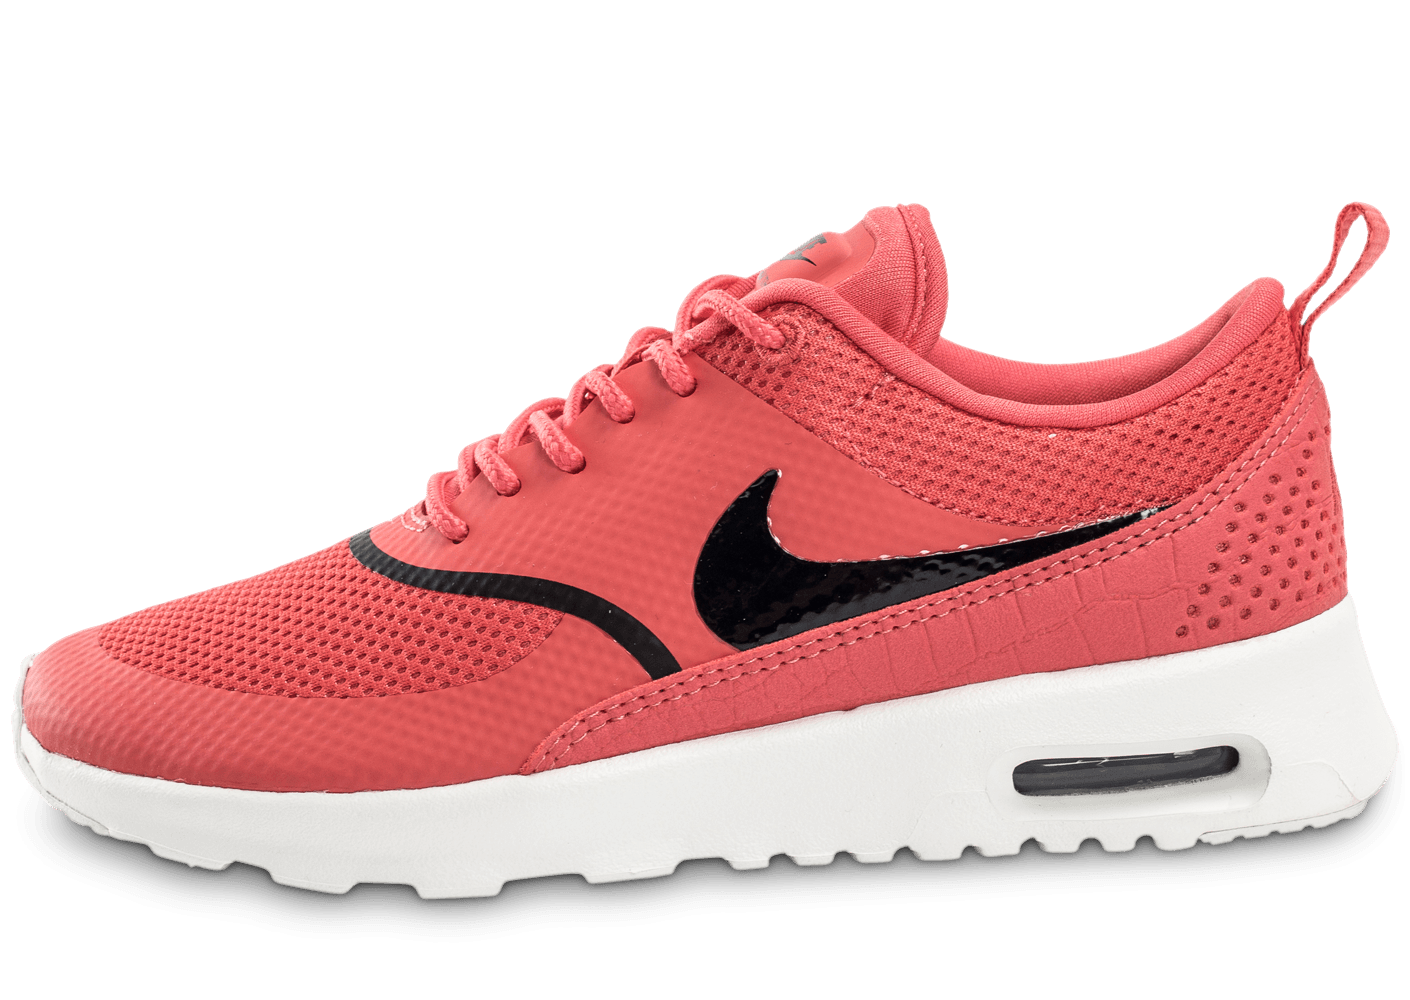 nike air max thea rouge nike air max thea rouge cheap nike. Black Bedroom Furniture Sets. Home Design Ideas